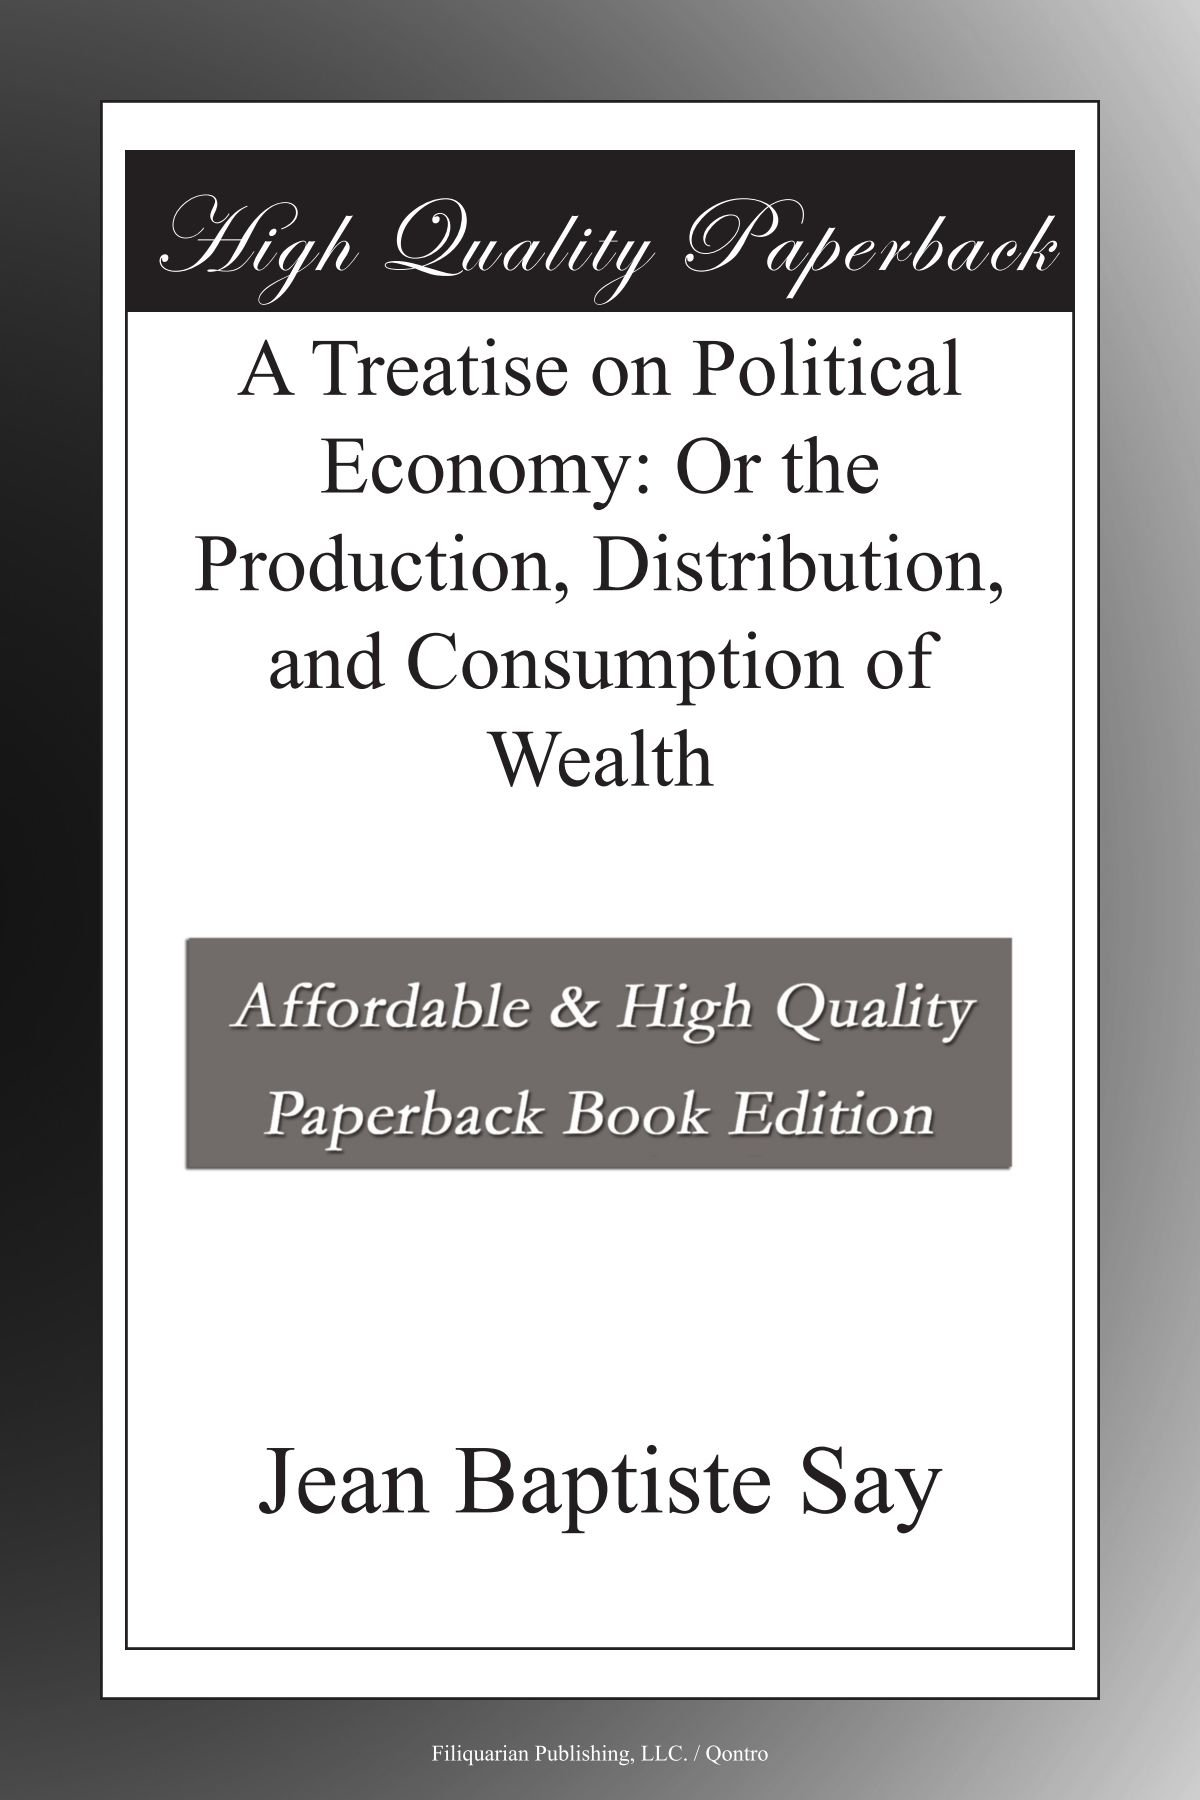 Download A Treatise on Political Economy: Or the Production, Distribution, and Consumption of Wealth pdf epub